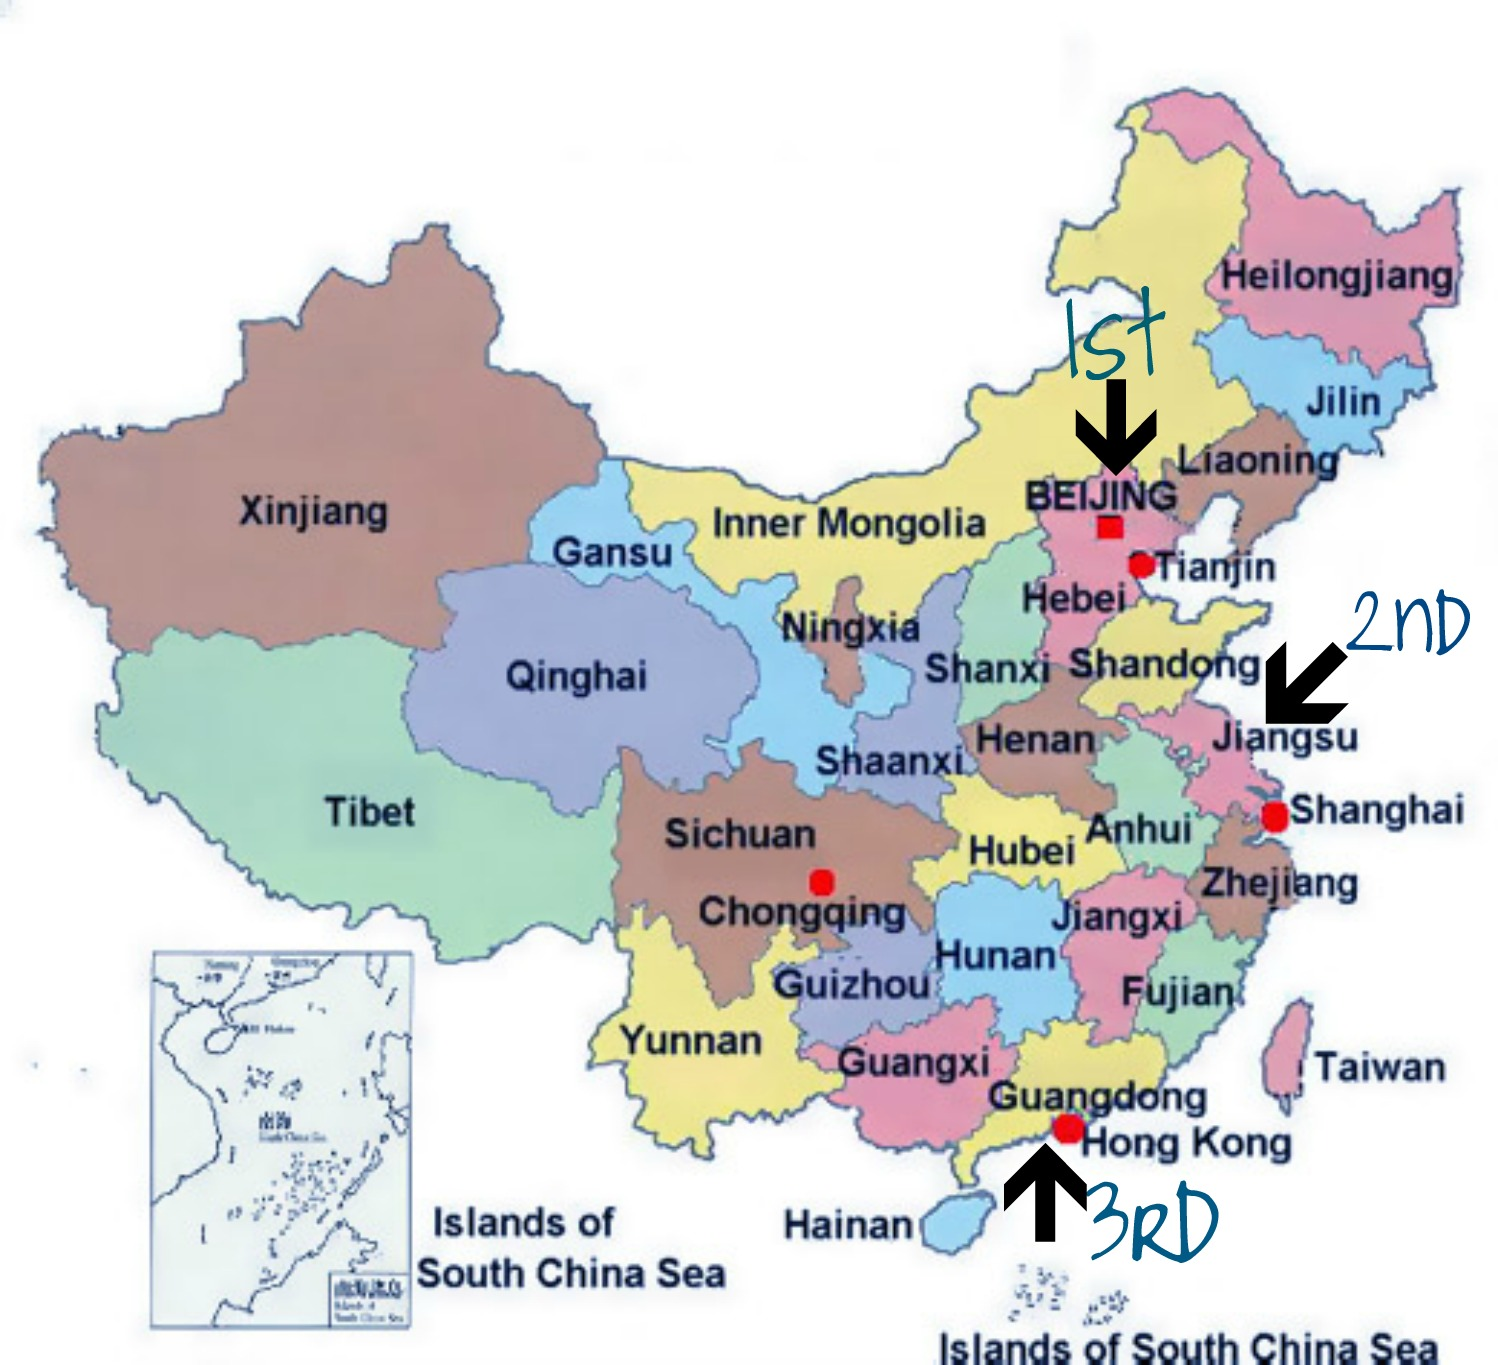 and third guangzhou the capital of guangdong province and the location of the u s consulate for six nights we expect the weather particularly in